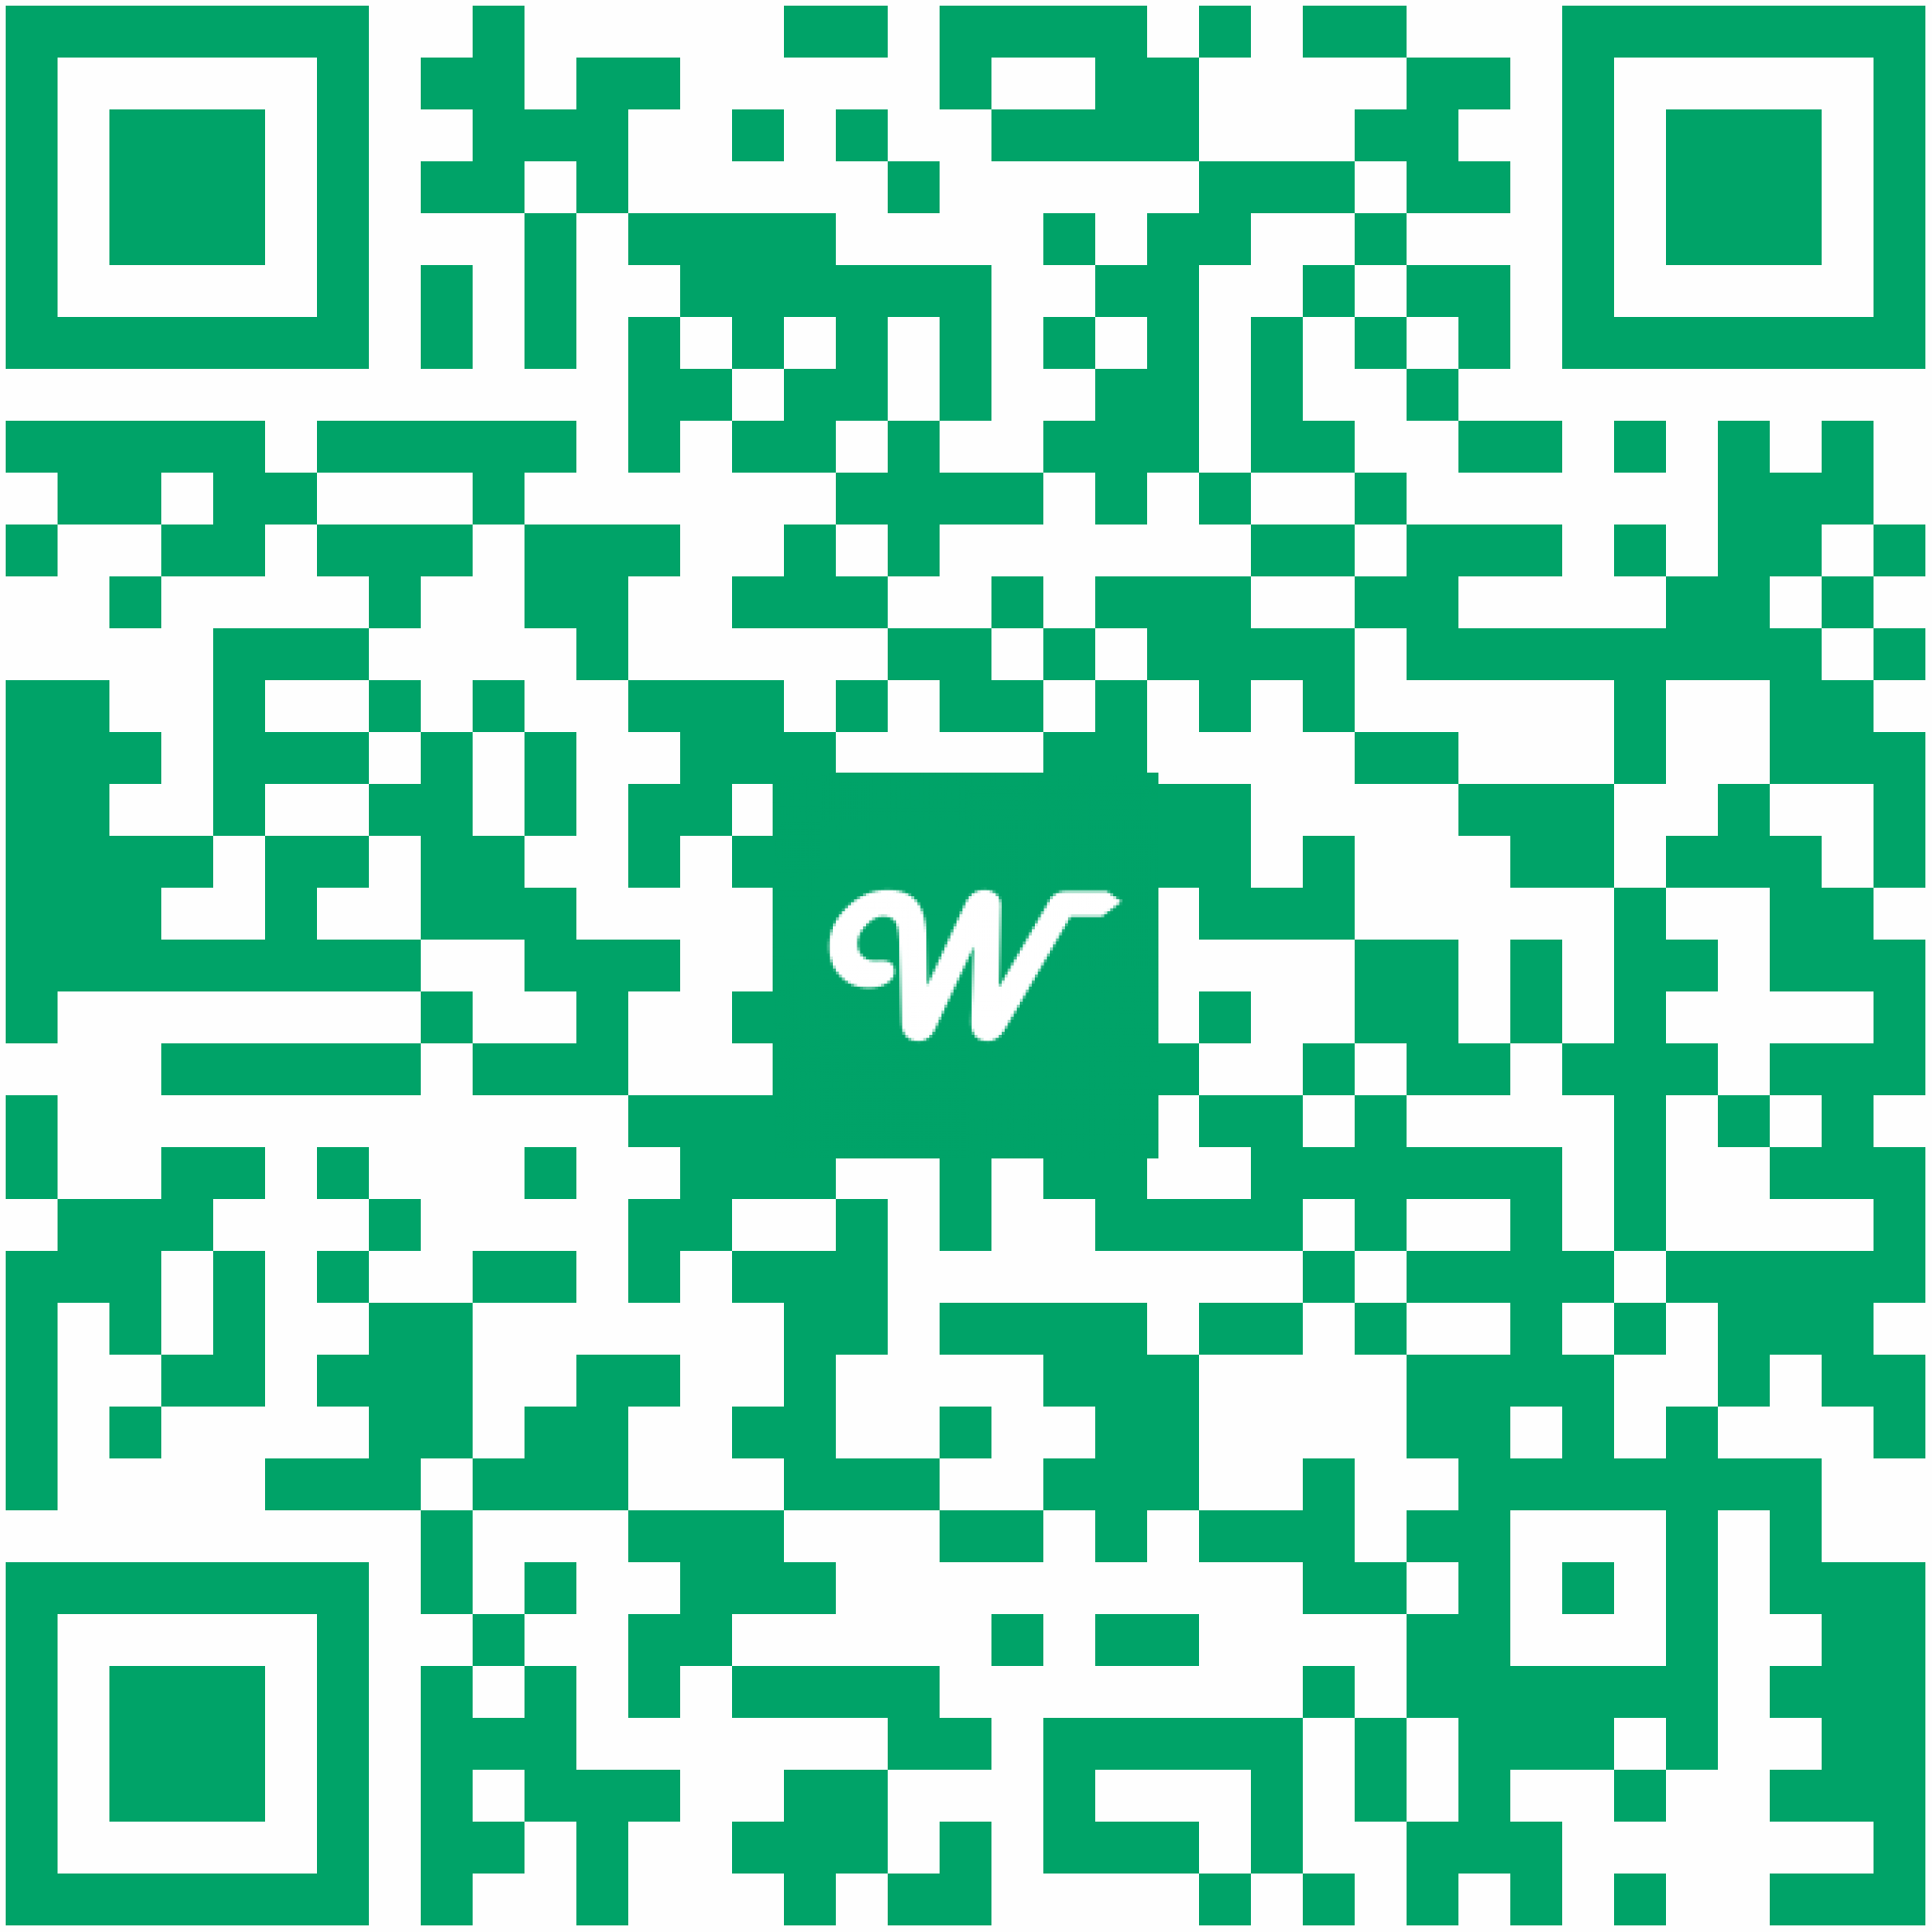 Printable QR code for Cabañas Faro Del Valle